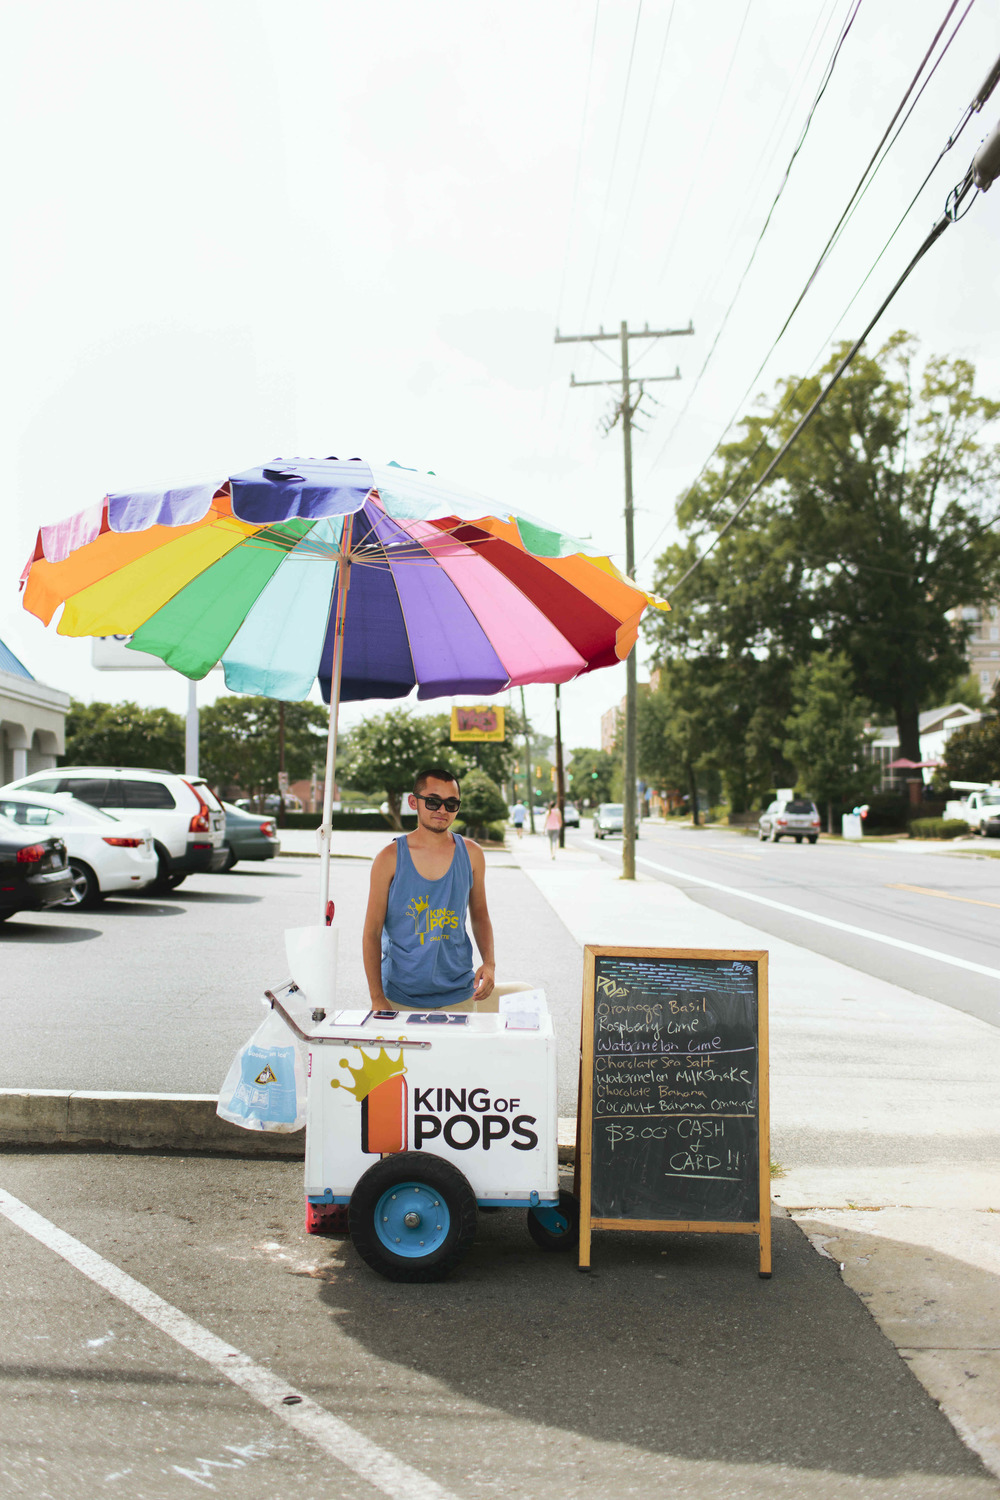 AshevilleFolk Summer City Guide: Charlotte NC with Megan Gielow. King of Pops. Popsicle stand with a variety of unique flavors. Their food cart location is posted daily on their website.